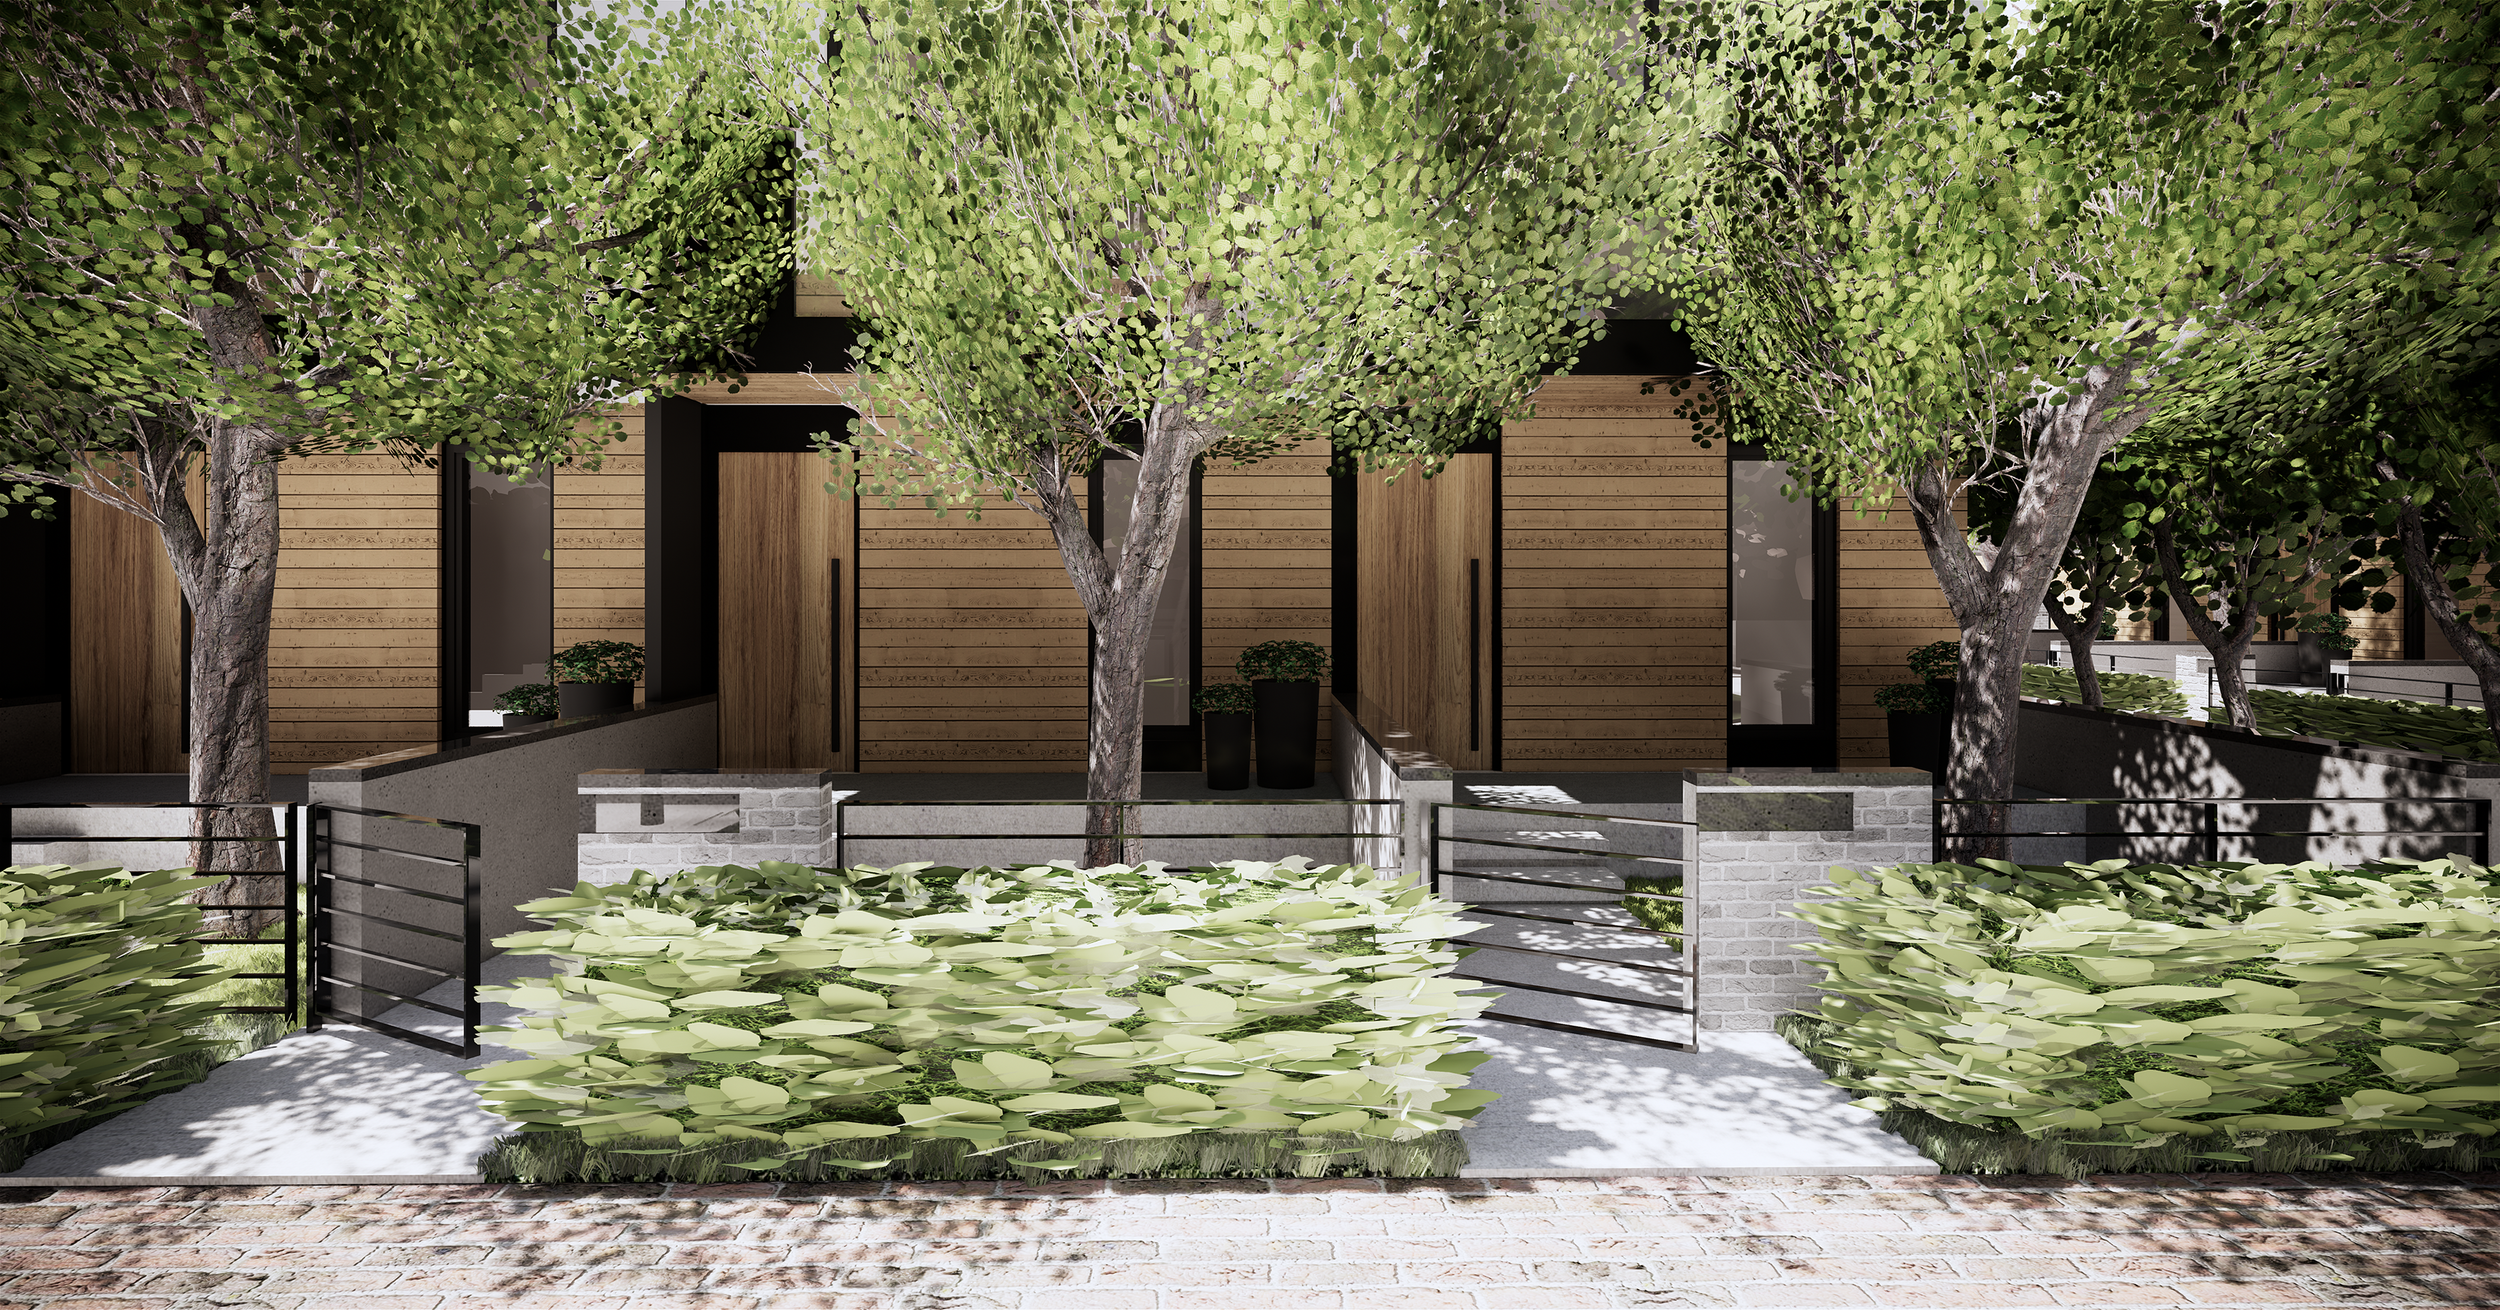 McKinley Burkart_Townhouse_Architecture (2)_web.png